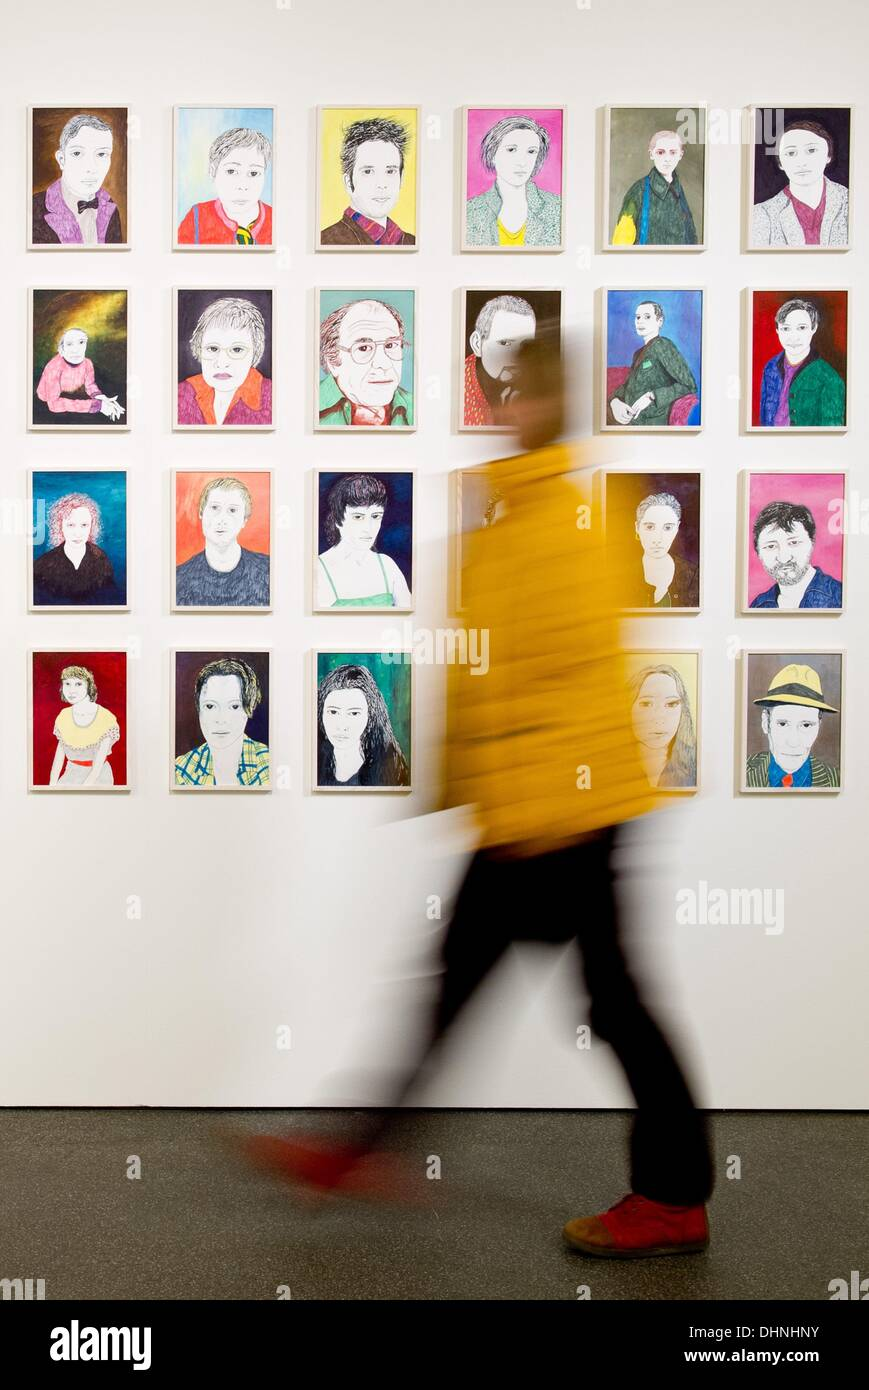 Goerlitz, Germany. 13th Nov, 2013. A woman walks past the artwork '48 portraits' by Grit Hachmeister during a media tour in the exhibition 'Localization. Contemporary Art from Saxony' in the Kulturhistorisches Museum in the Kaisertrutz in Goerlitz, Germany, 13 November 2013. The exhibition runs from 15 November 2013 to 02 March 2014. Photo: Sebastian Kahnert/dpa/Alamy Live News - Stock Image